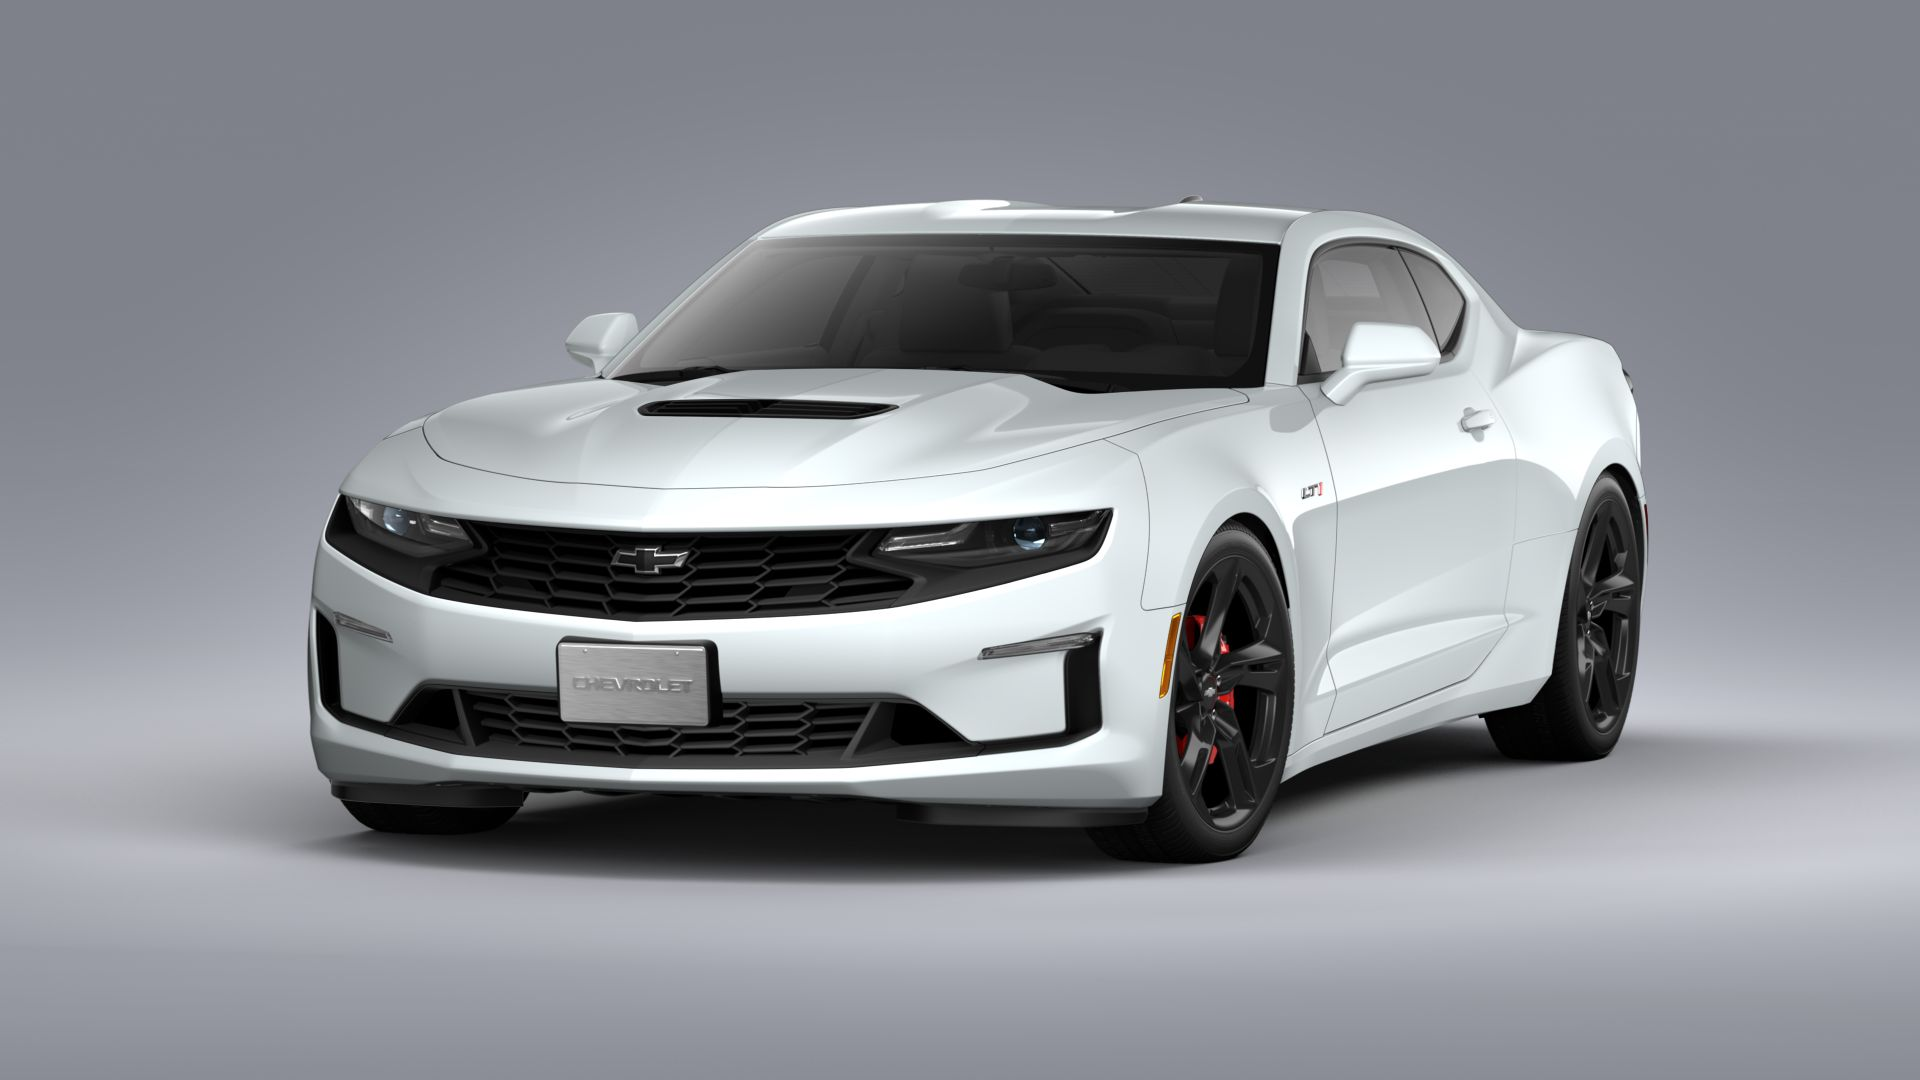 New 2021 Chevrolet Camaro LT1 REAR WHEEL DRIVE Coupe